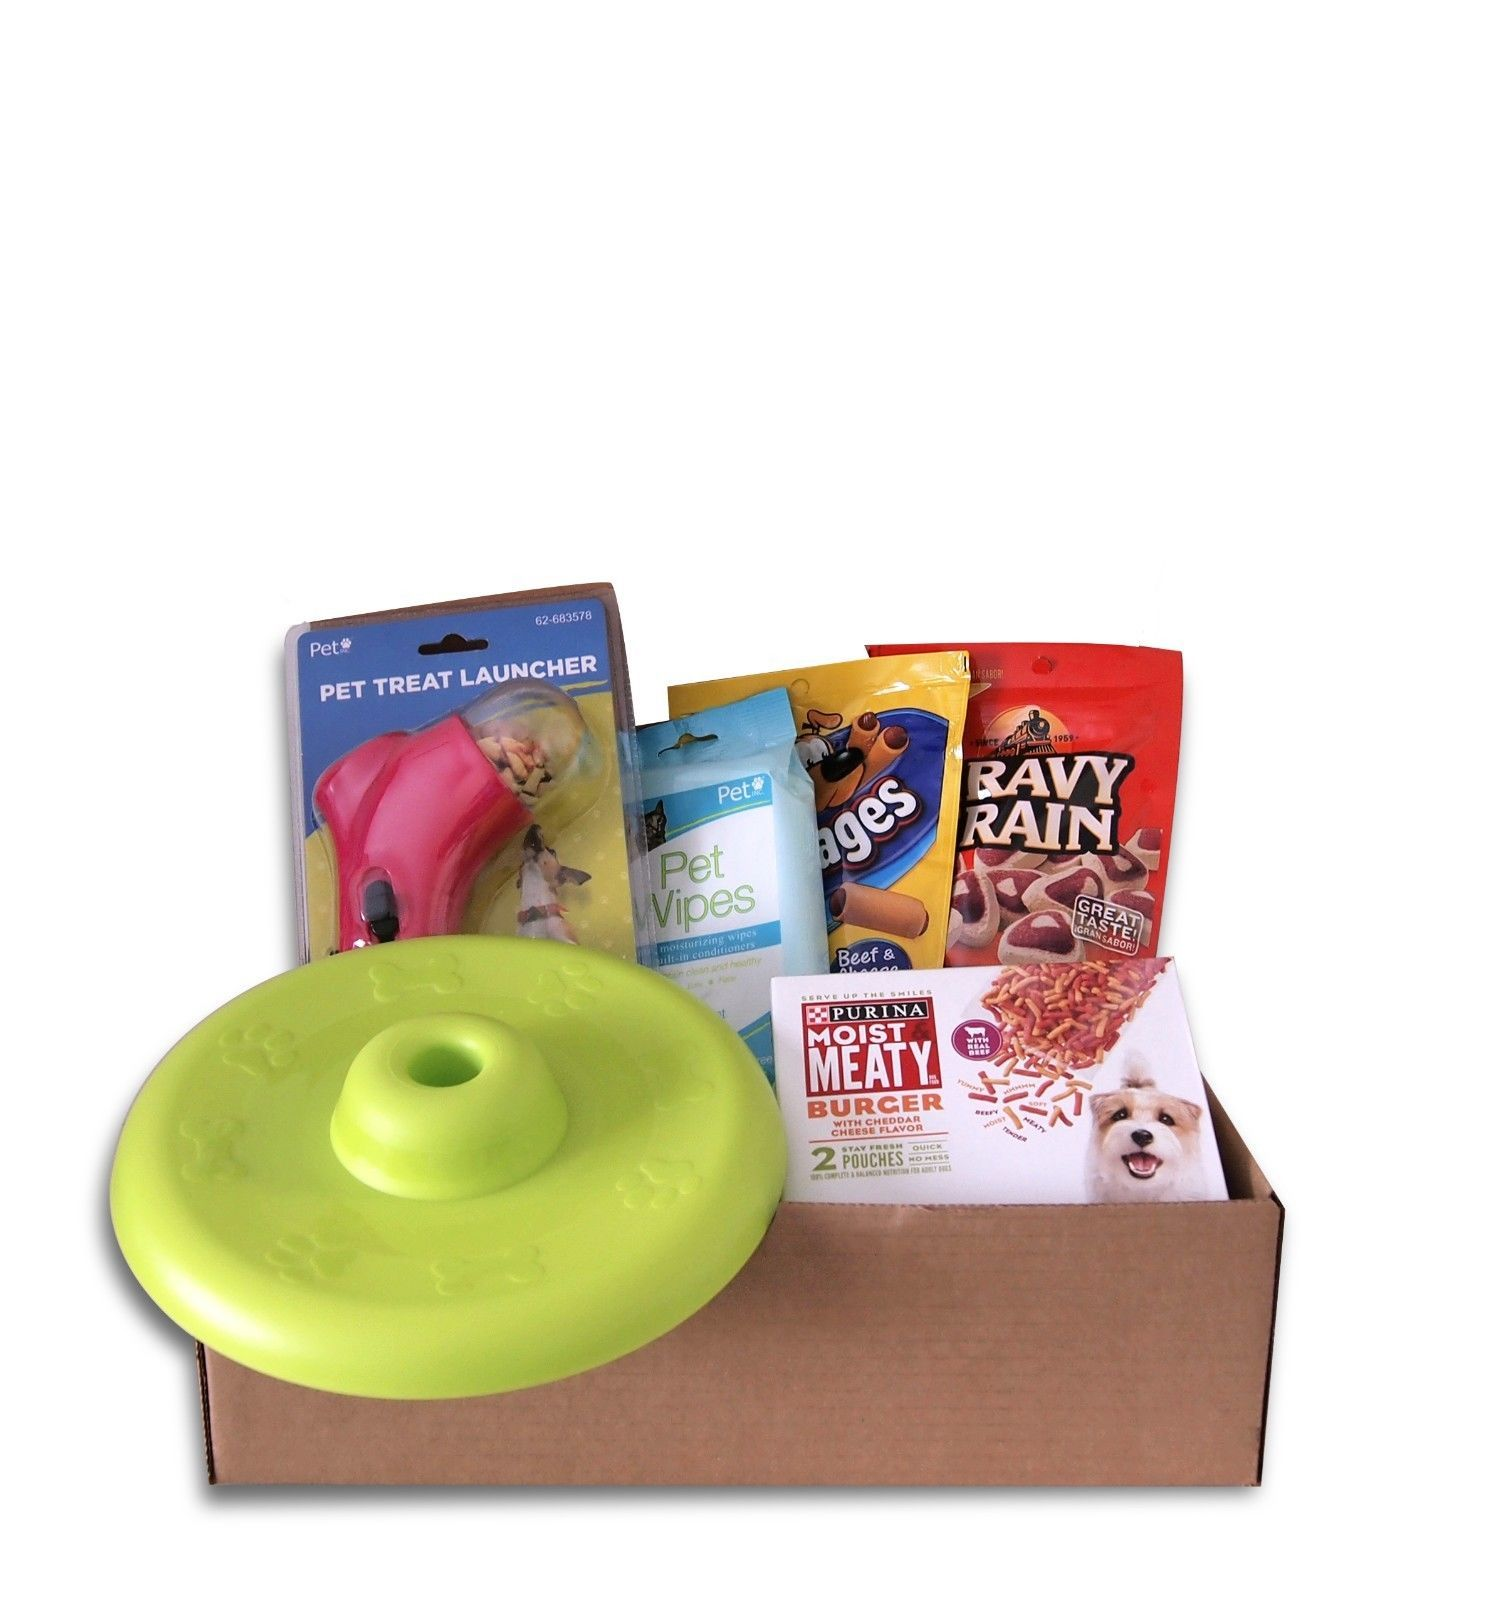 Deluxe Dog Gift Basket Treats Crewing Toy Set - $45.55